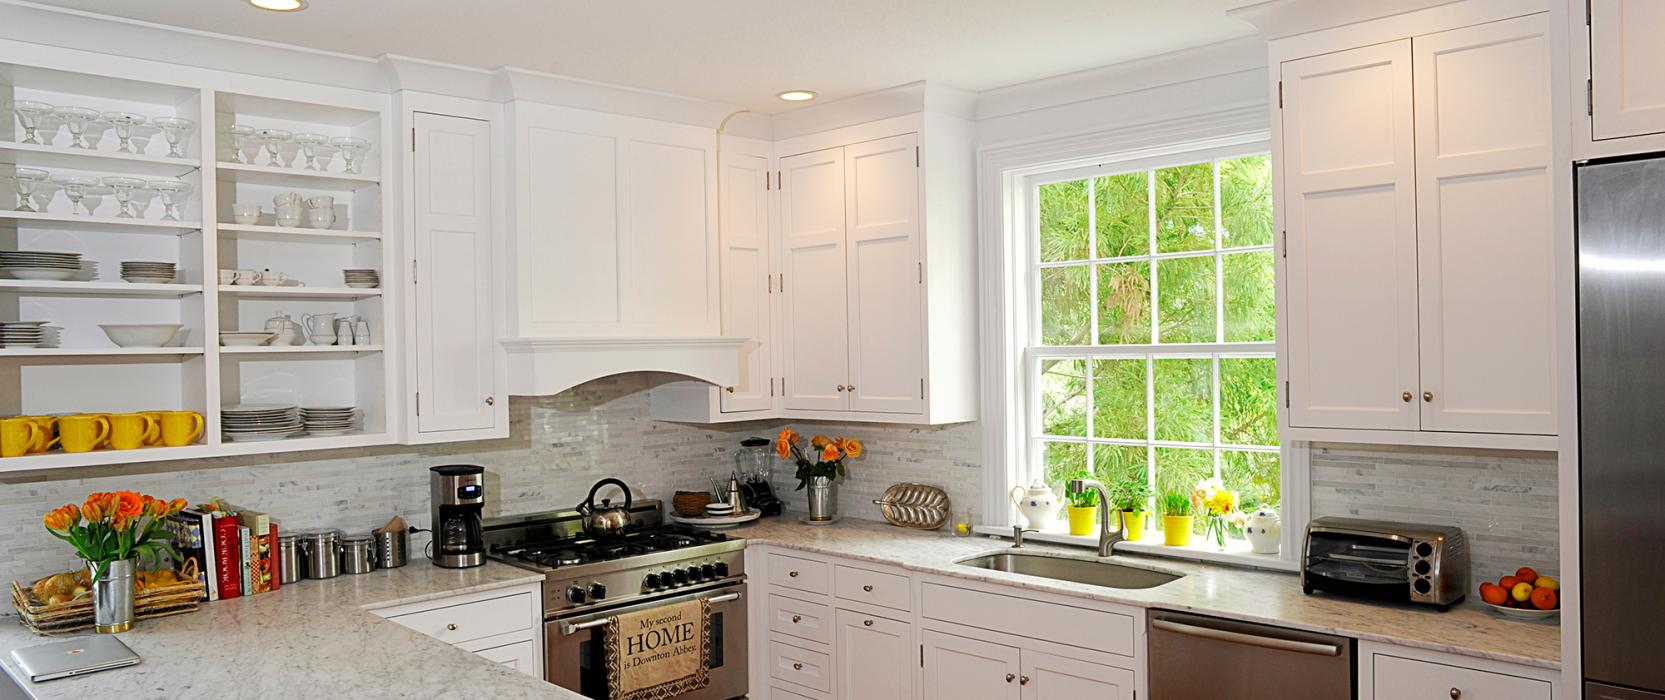 Rock pond kitchens